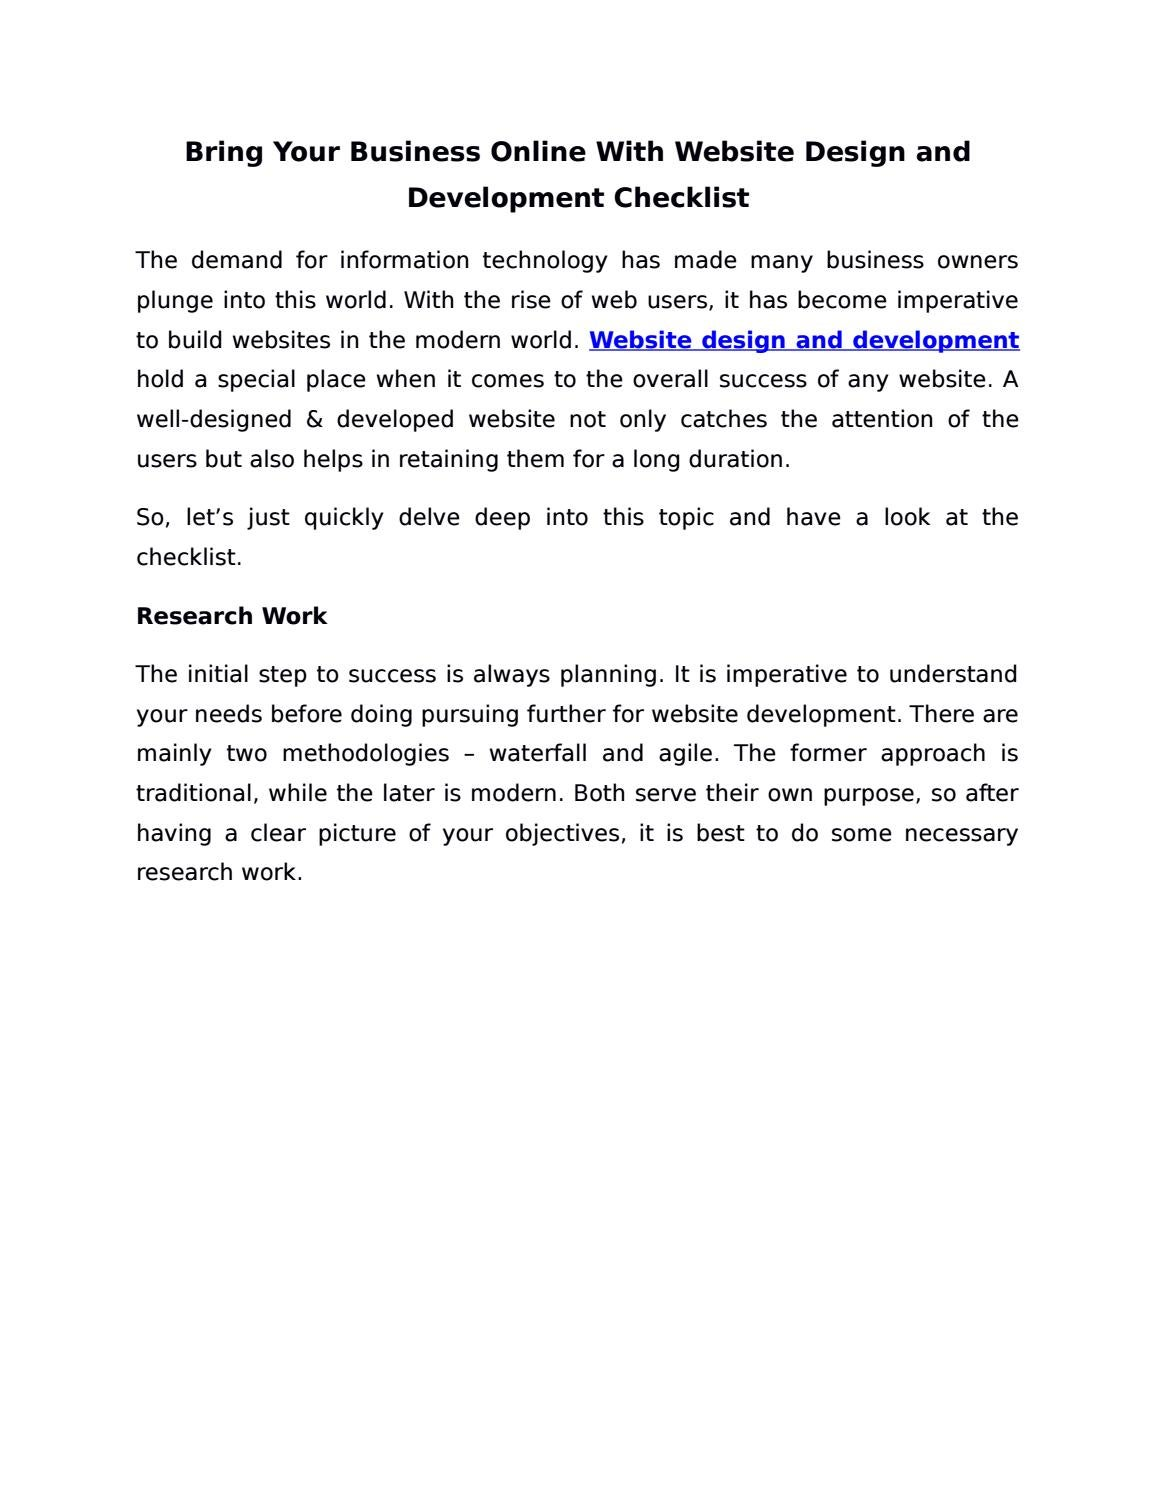 Bring Your Business Online With Website Design and Development Checklist